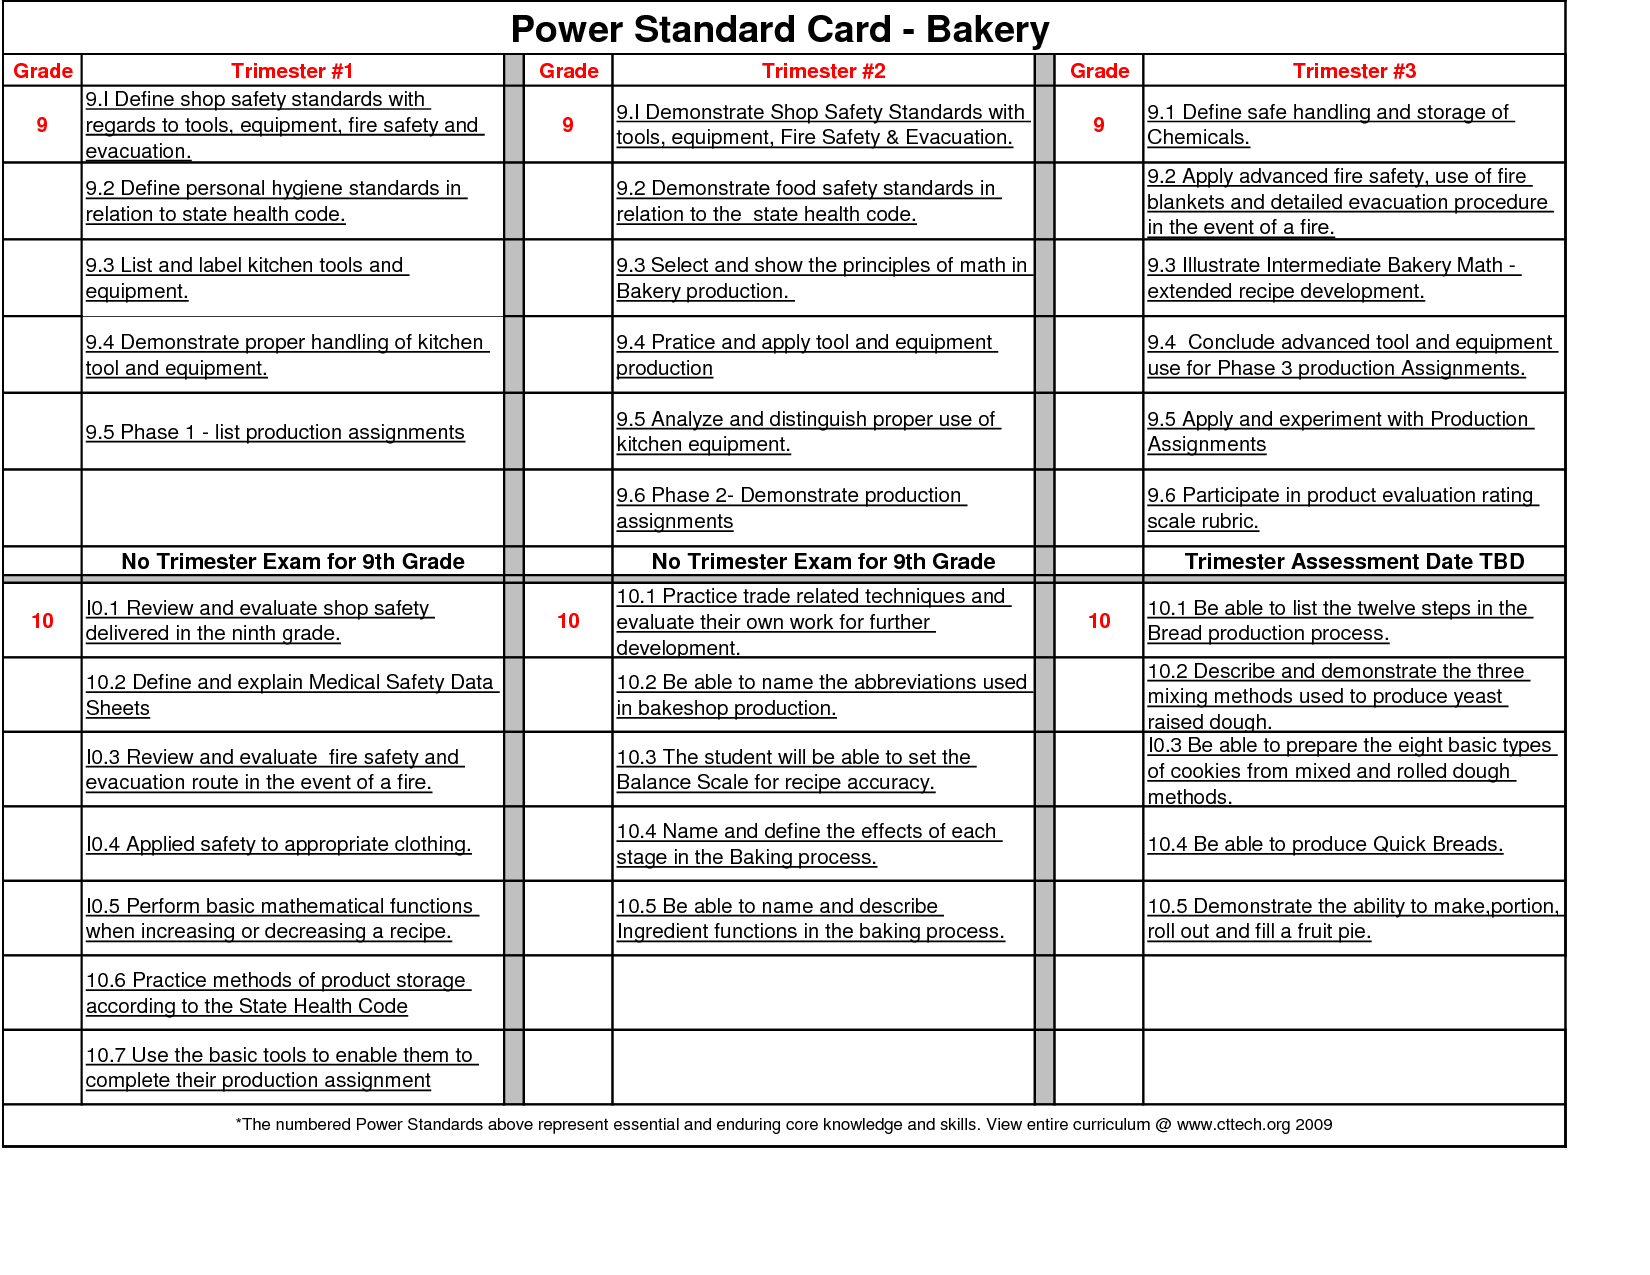 Business Plan Small Bakery Power Standard Card CakepinsCom